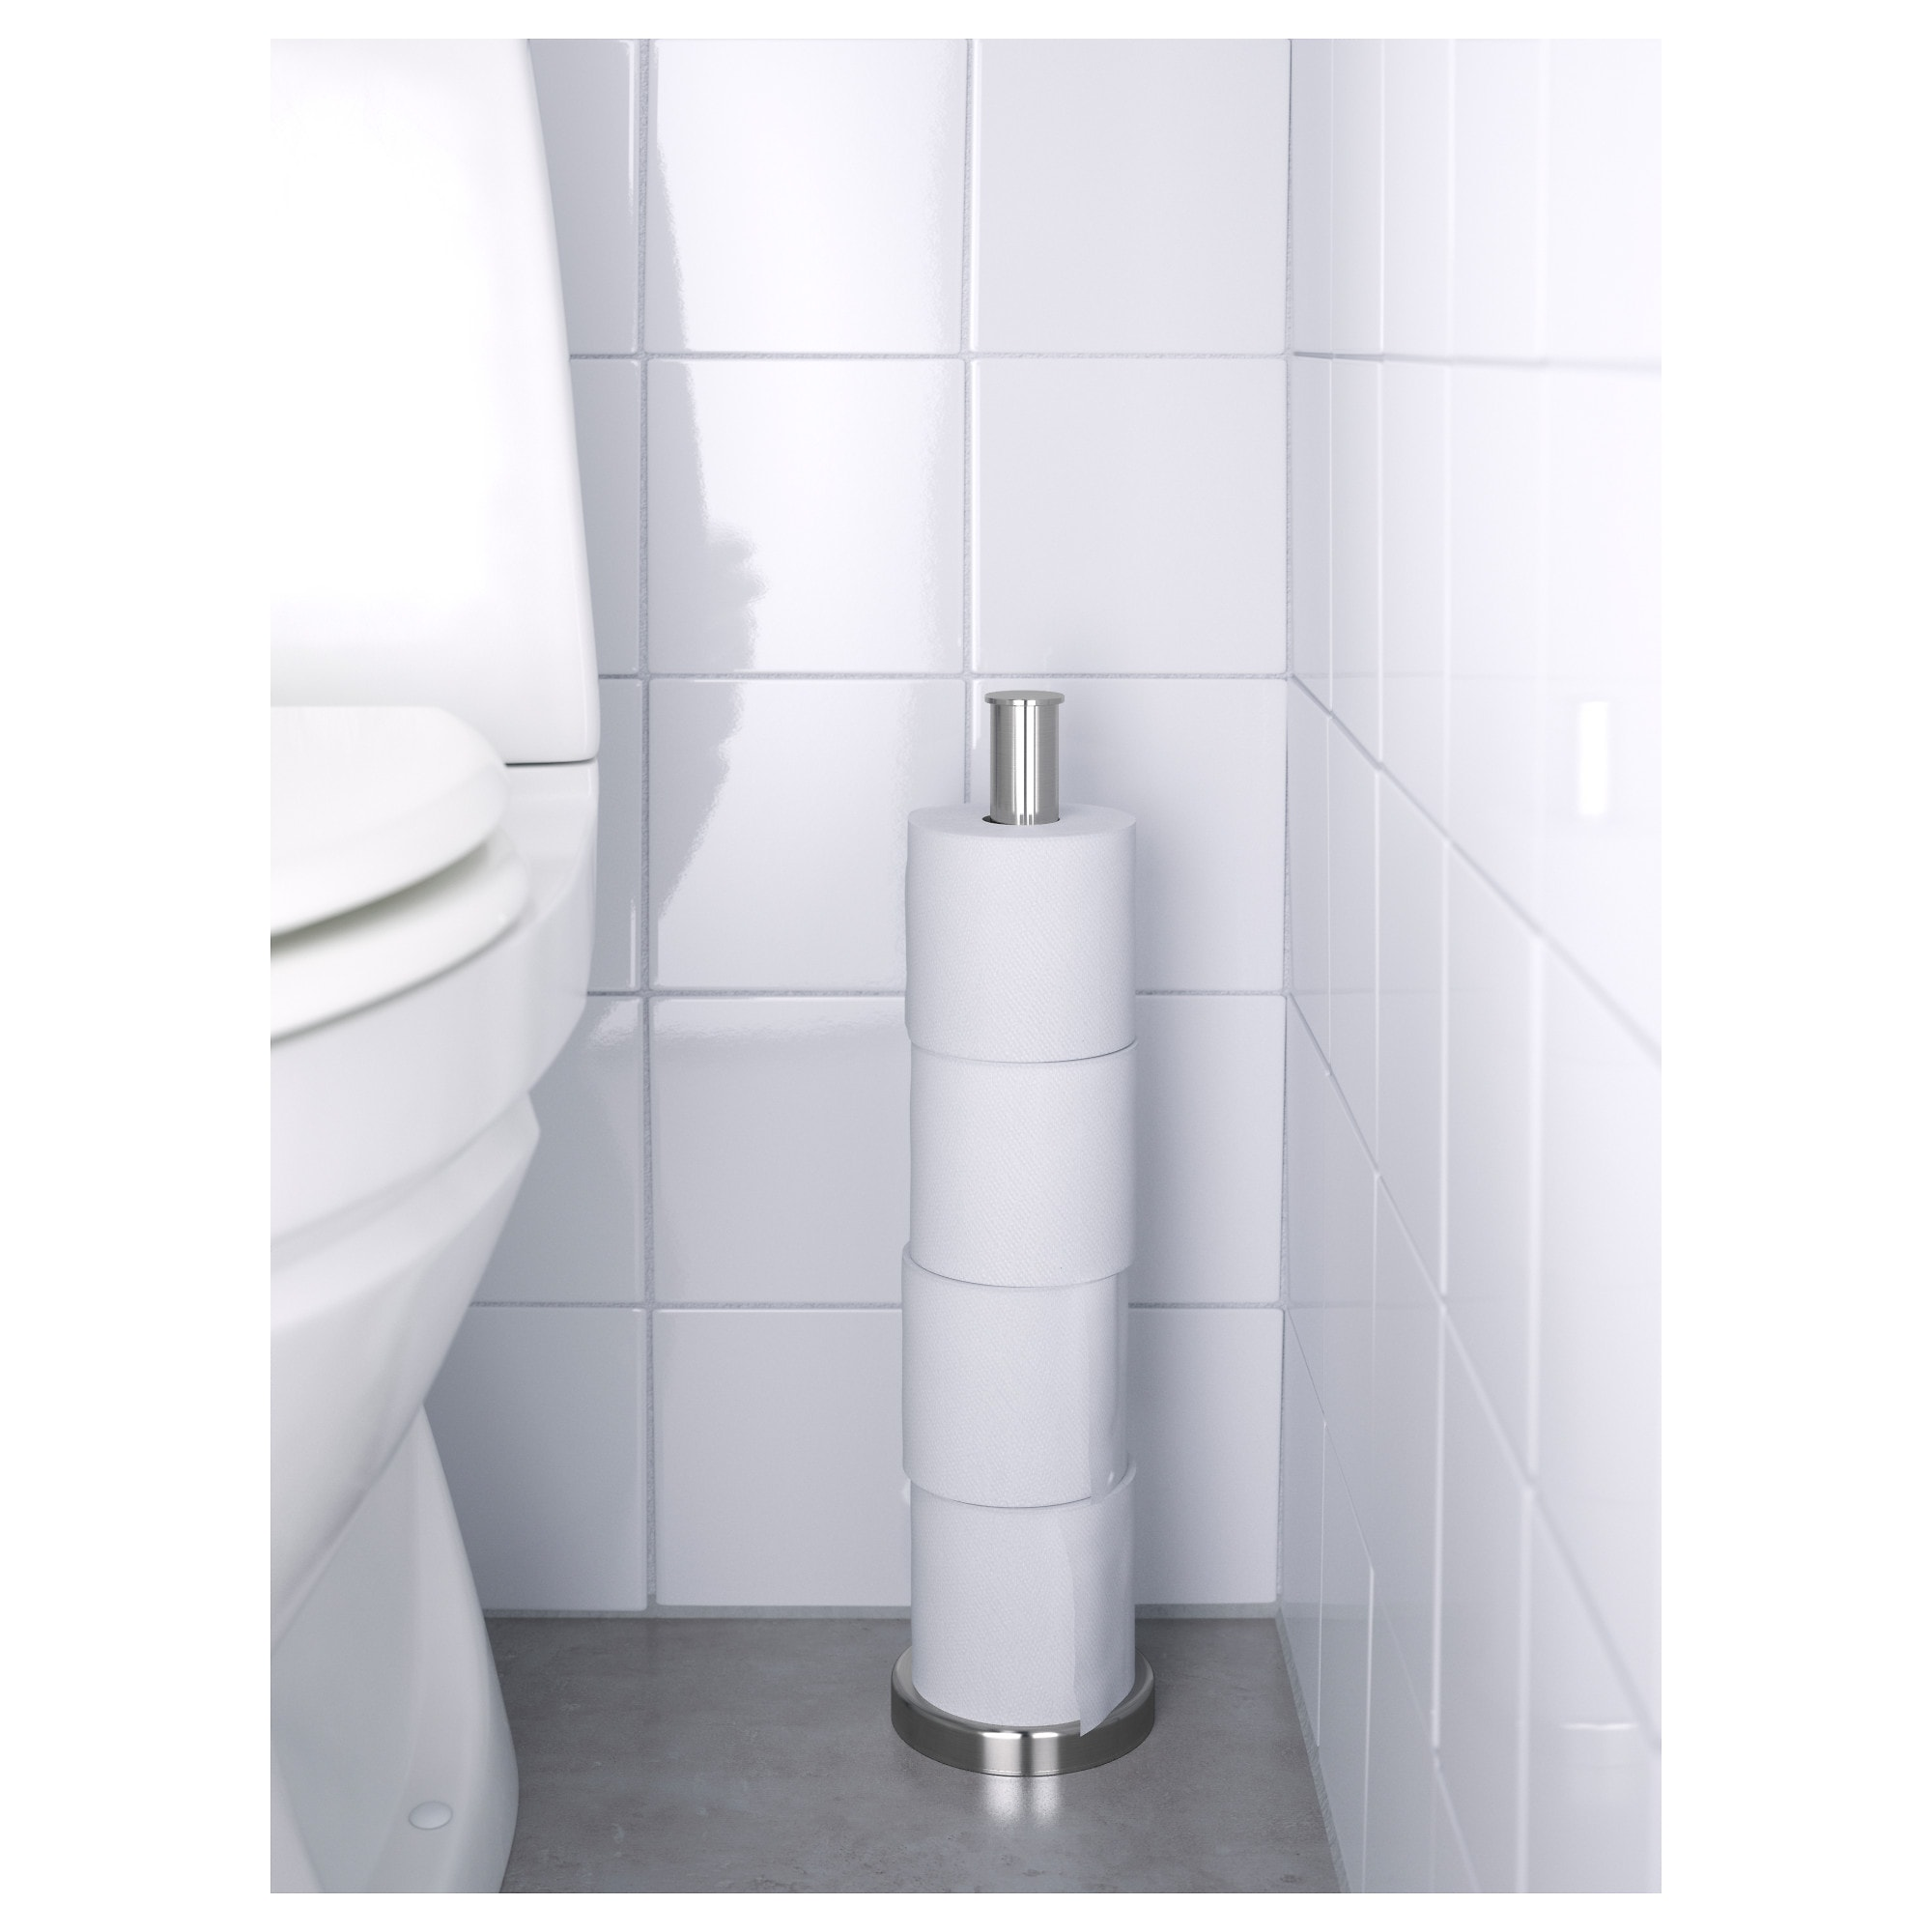 Lampe Ikea Boule Qui SOuvre ~ toilet paper roll holder free standing toilet paper roll holder